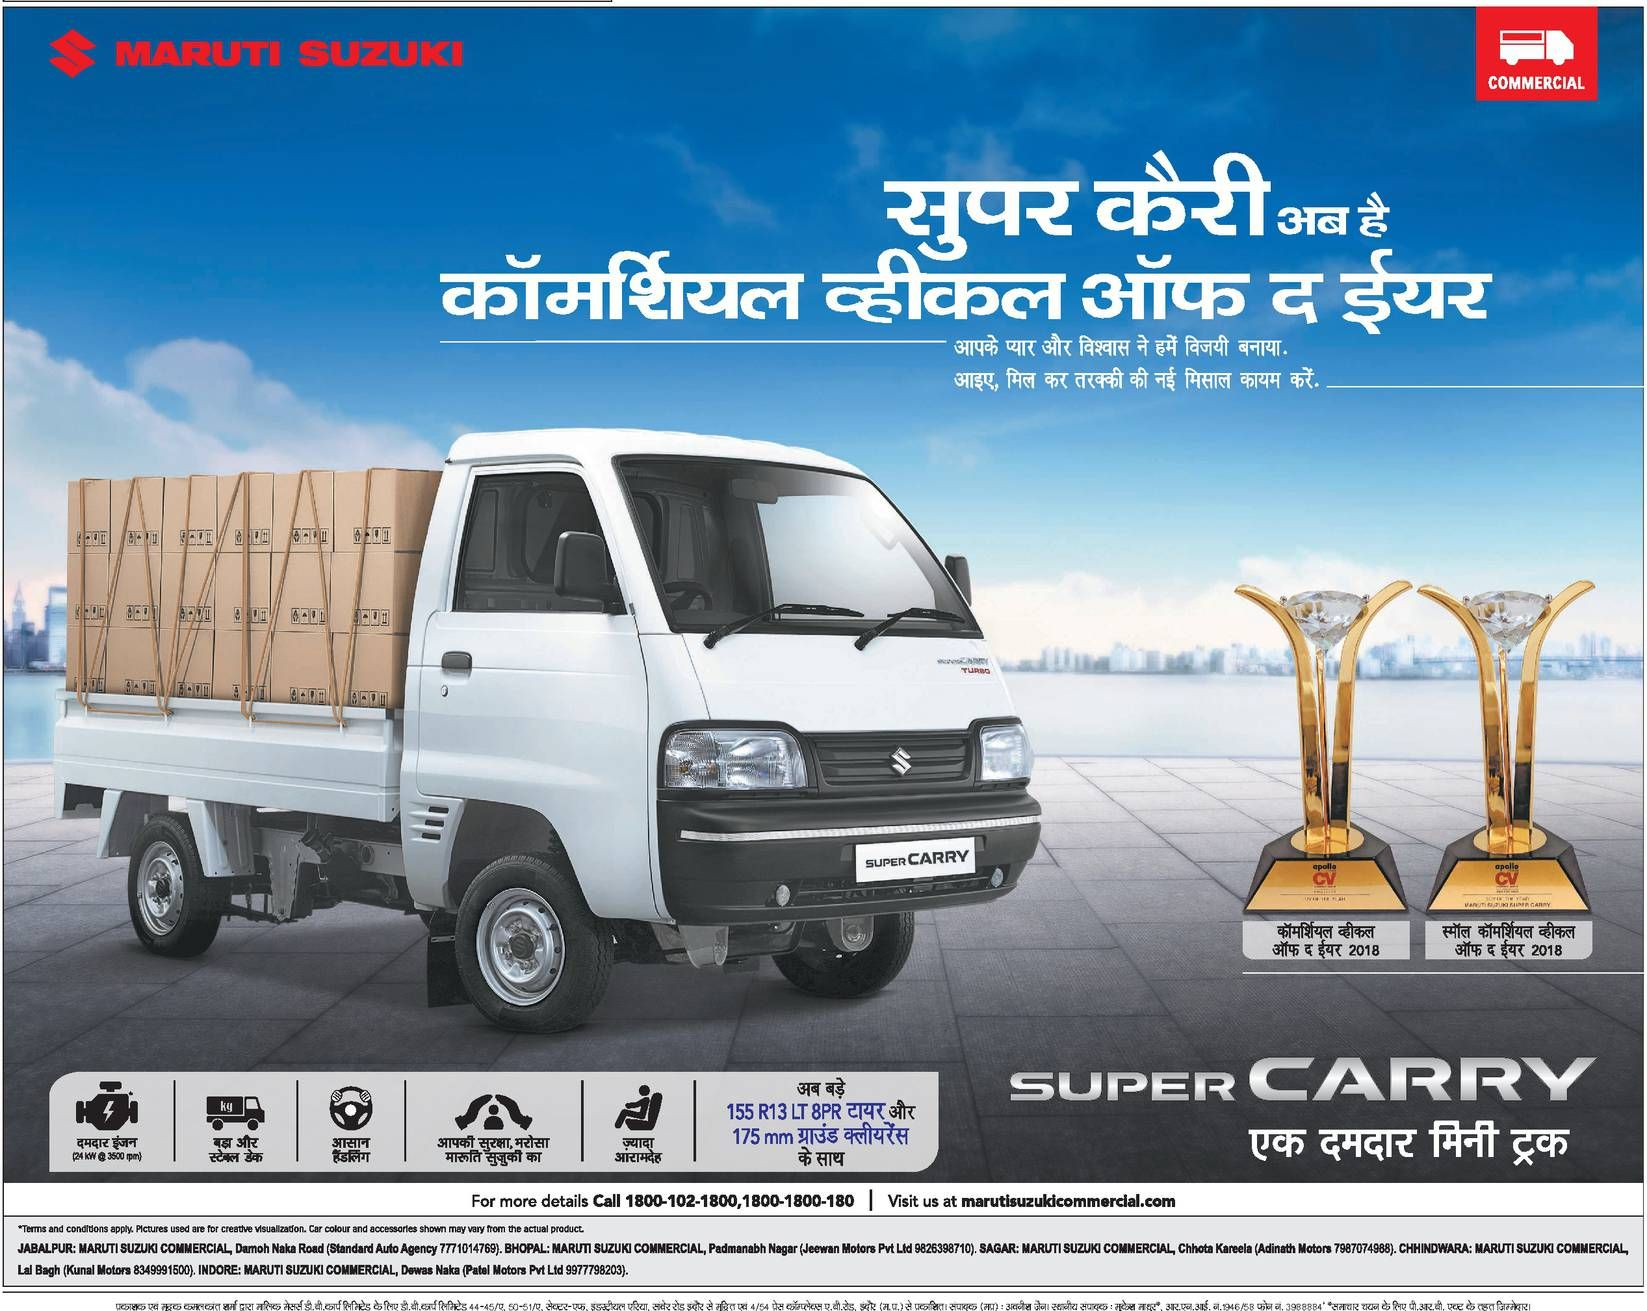 Maruti Suzuki Super Carry Is Now The Commercial Vehicle Of The Year Cars For Sale Carry On